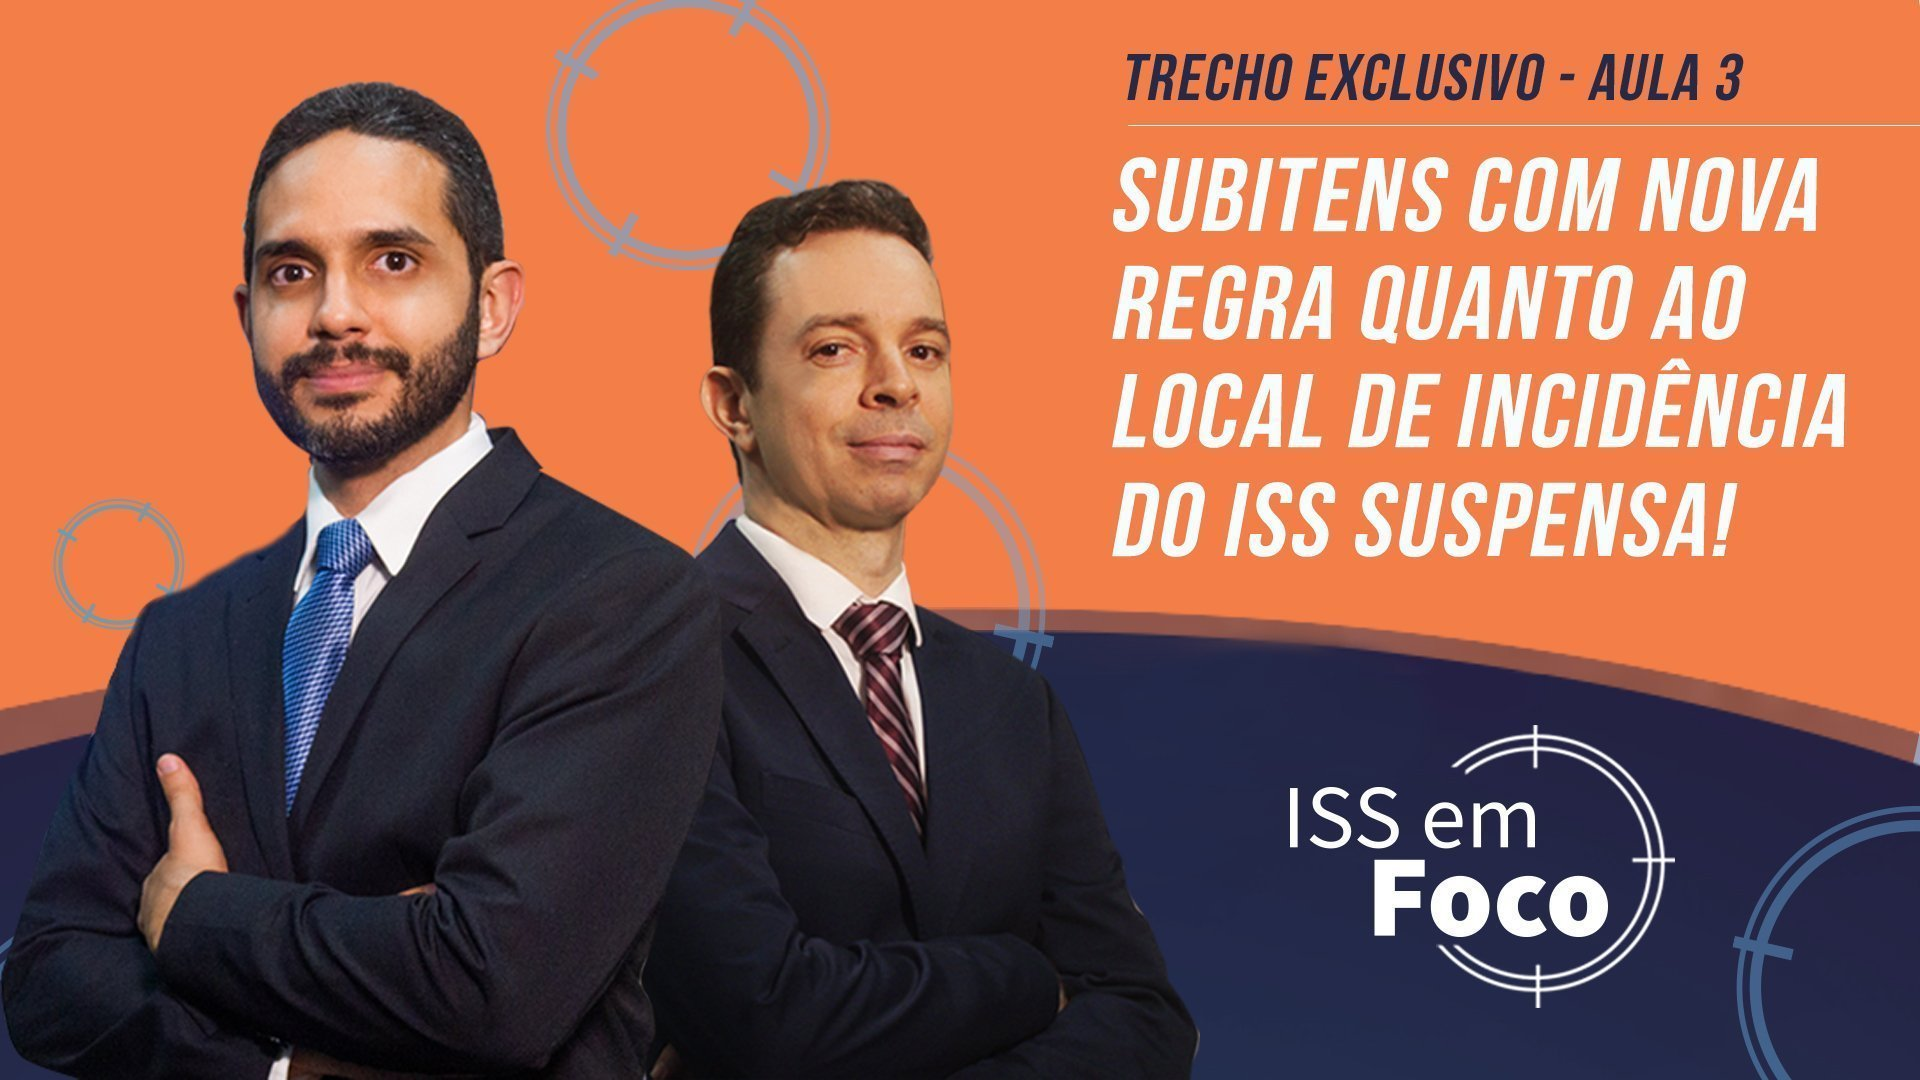 subitens-com-nova-regra-quanto-ao-local-de-incidencia-do-iss-suspensa